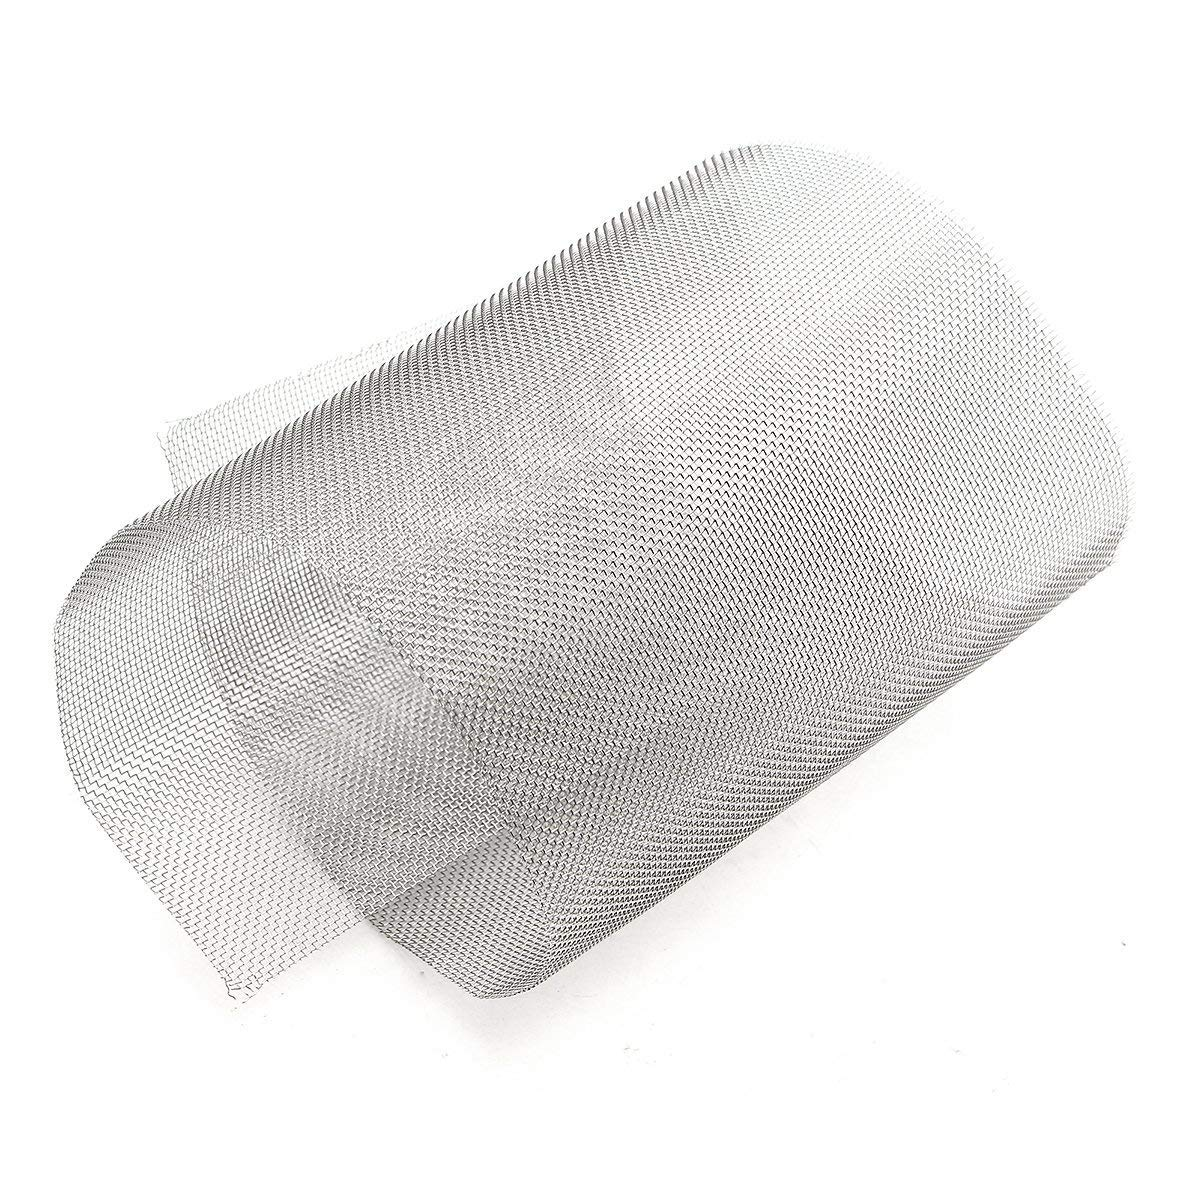 SS304 Stainless Steel Woven Screen Filter Wire Mesh Cloth